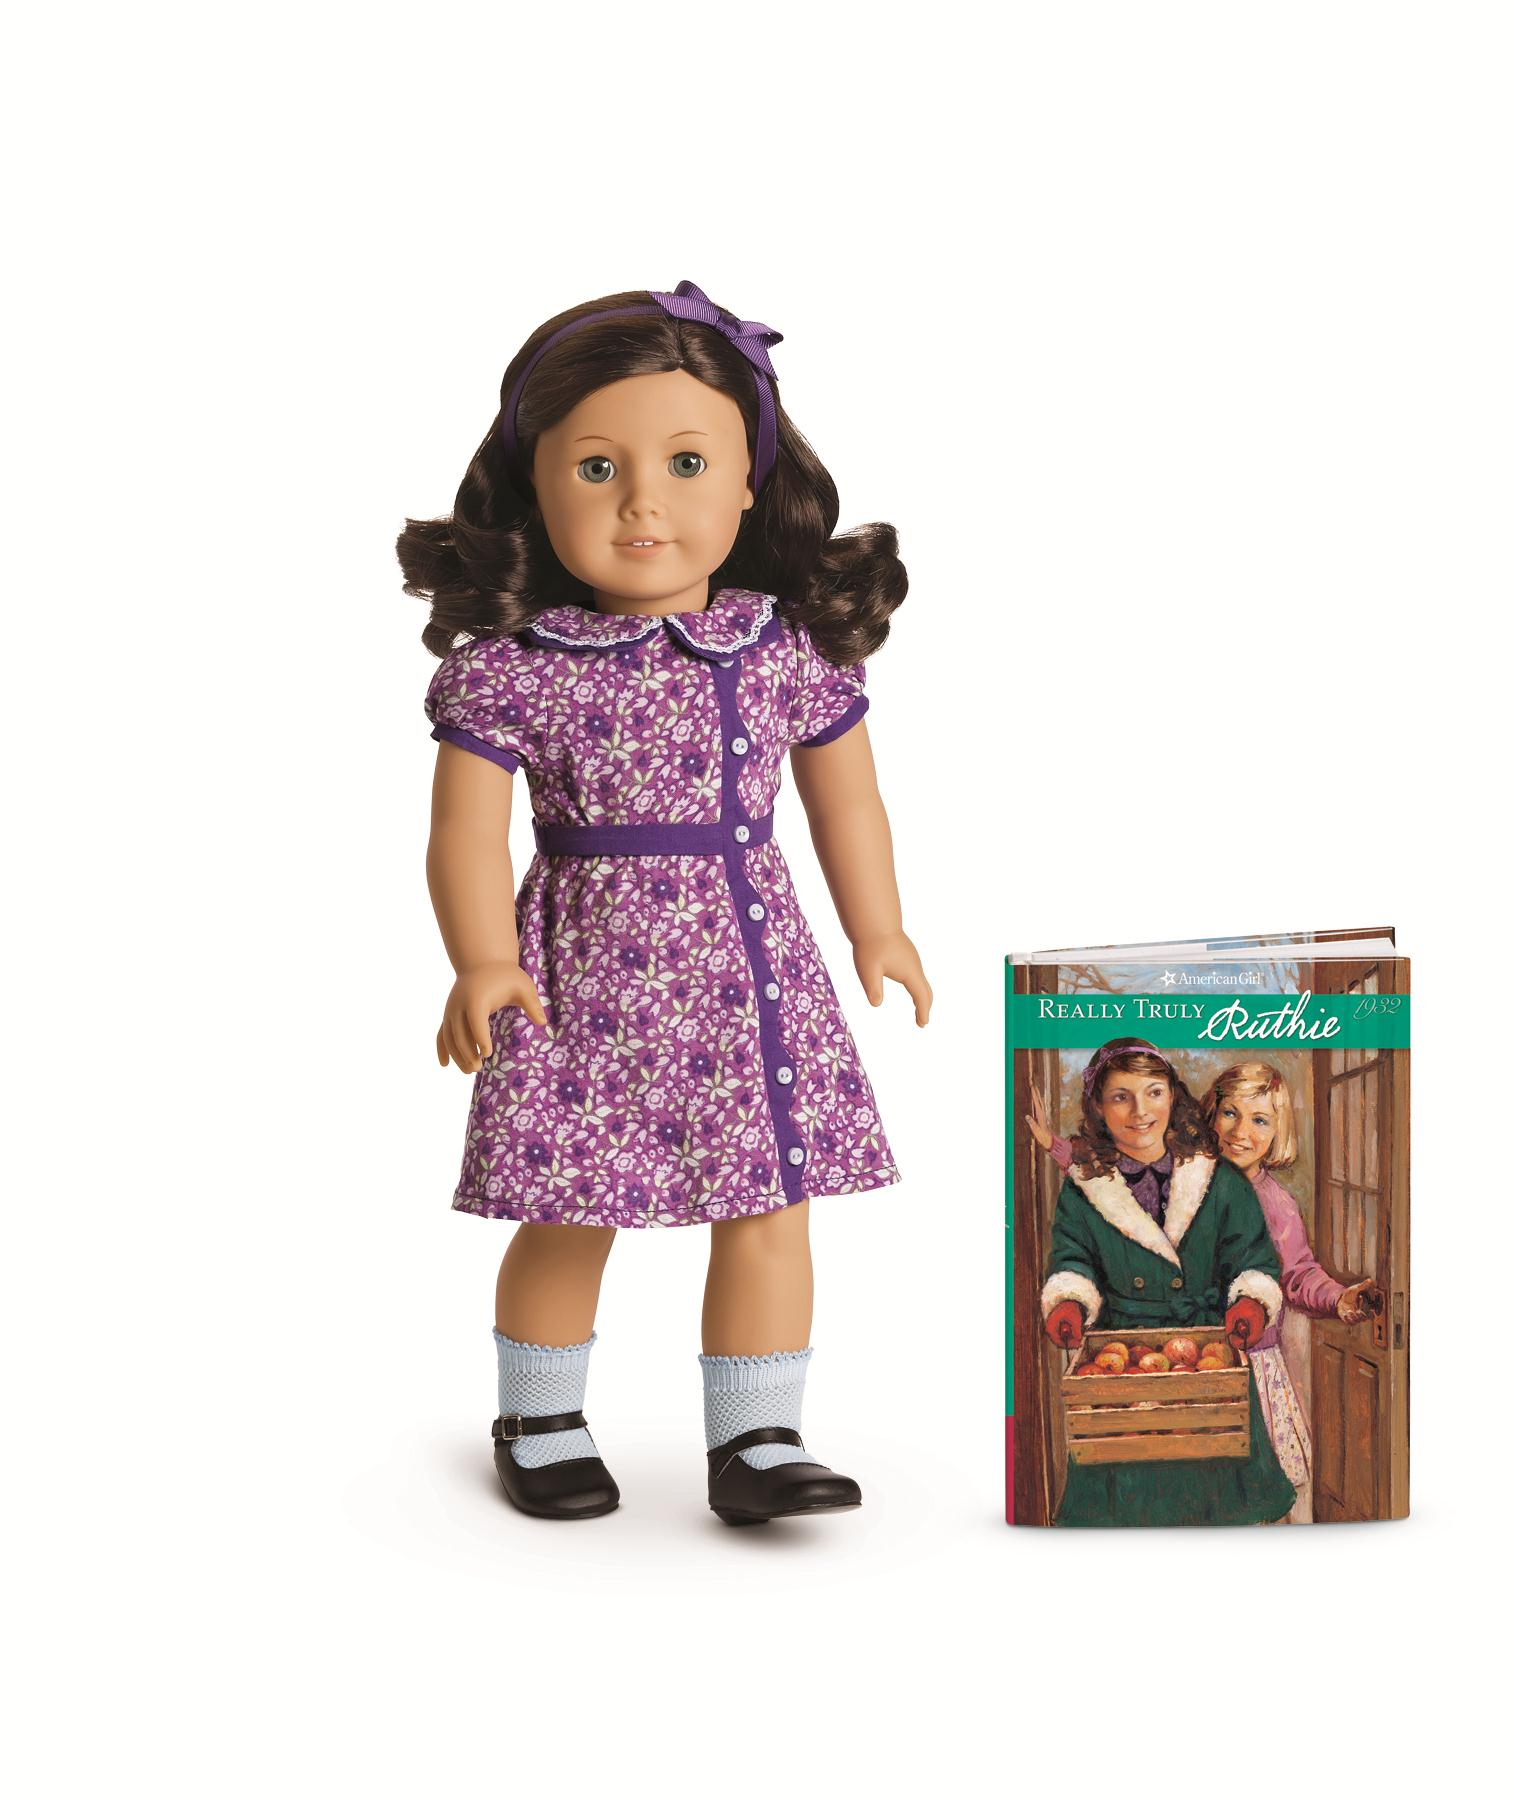 Ruthie, an American Girl doll whose story is set in the Great Depression.